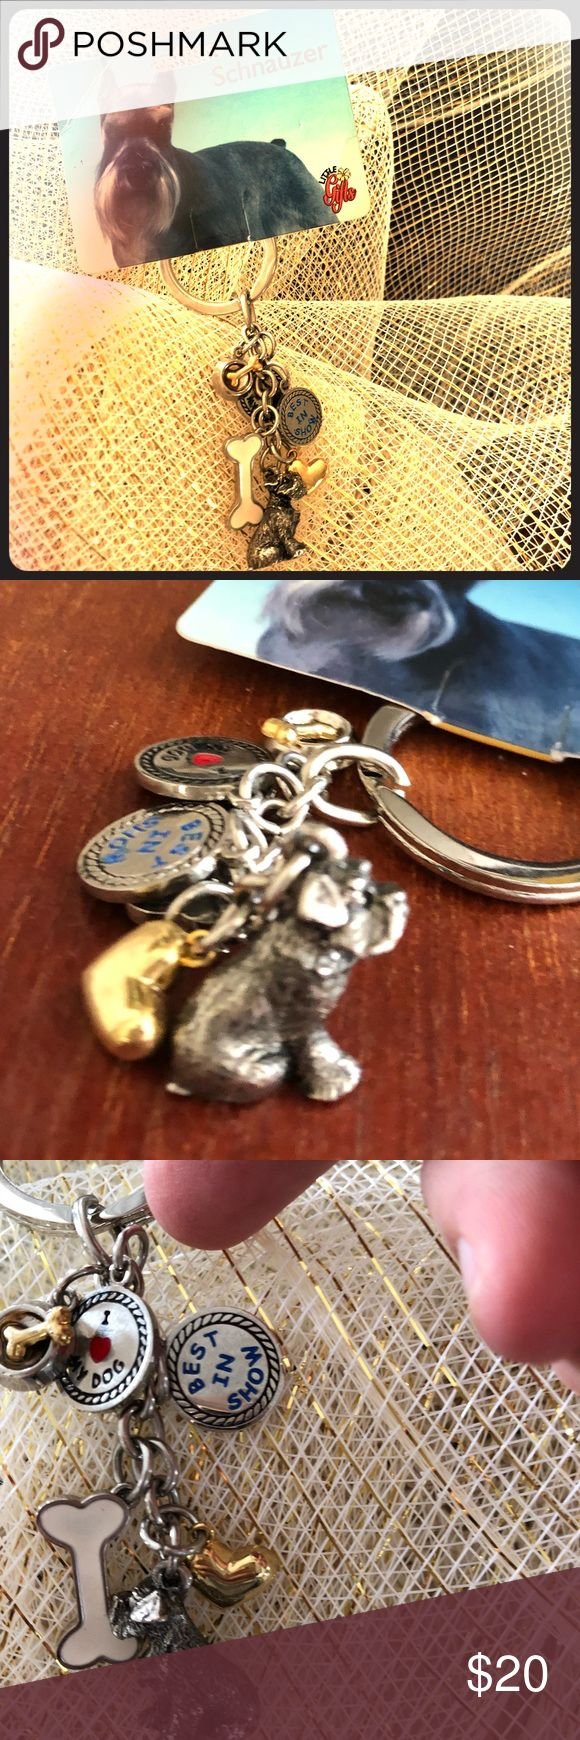 Schnauzer Key Chain with Charms Charms are Schnauzer, Best in Show, I ❤️ my dog, Bone, Feeding Bowl, Gold heart. Super cute,  Schnauzer has a pewter look. Silver in color. Great gift for your dog lover!🐶 Little Gifts Accessories Key & Card Holders